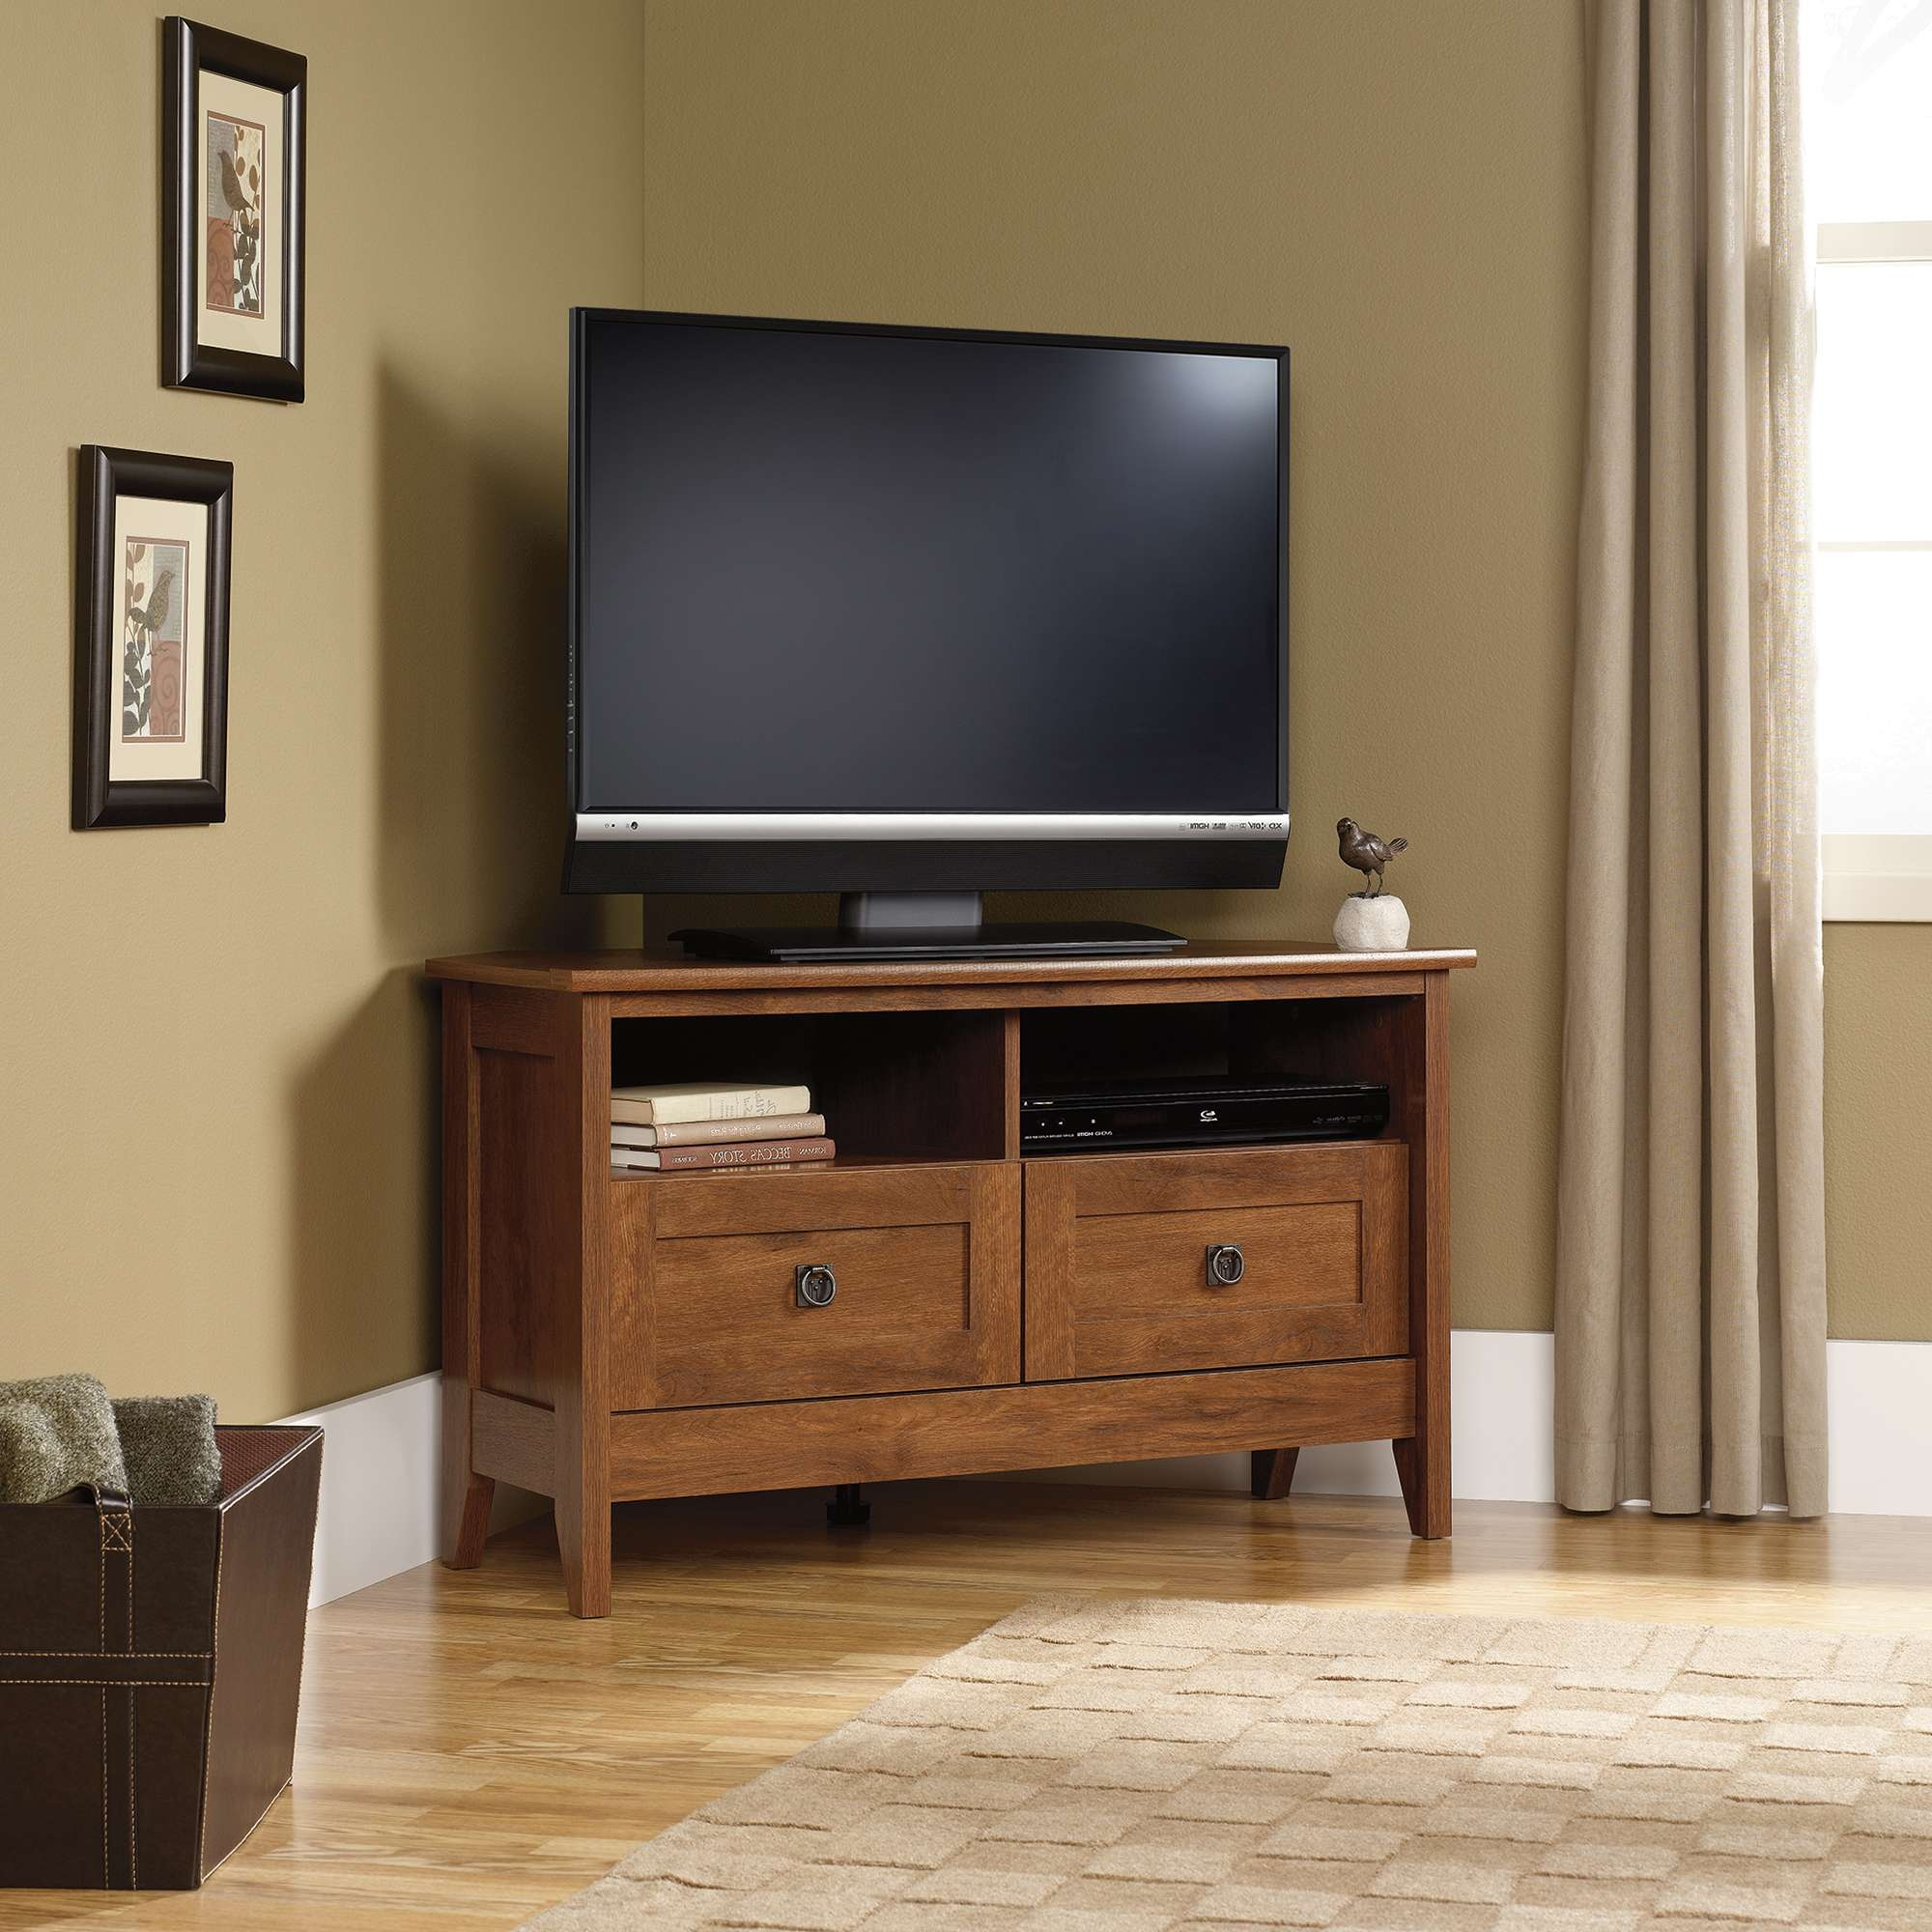 Sauder Select | Corner Tv Stand | 410627 | Sauder Pertaining To Corner Tv Stands With Drawers (View 10 of 15)